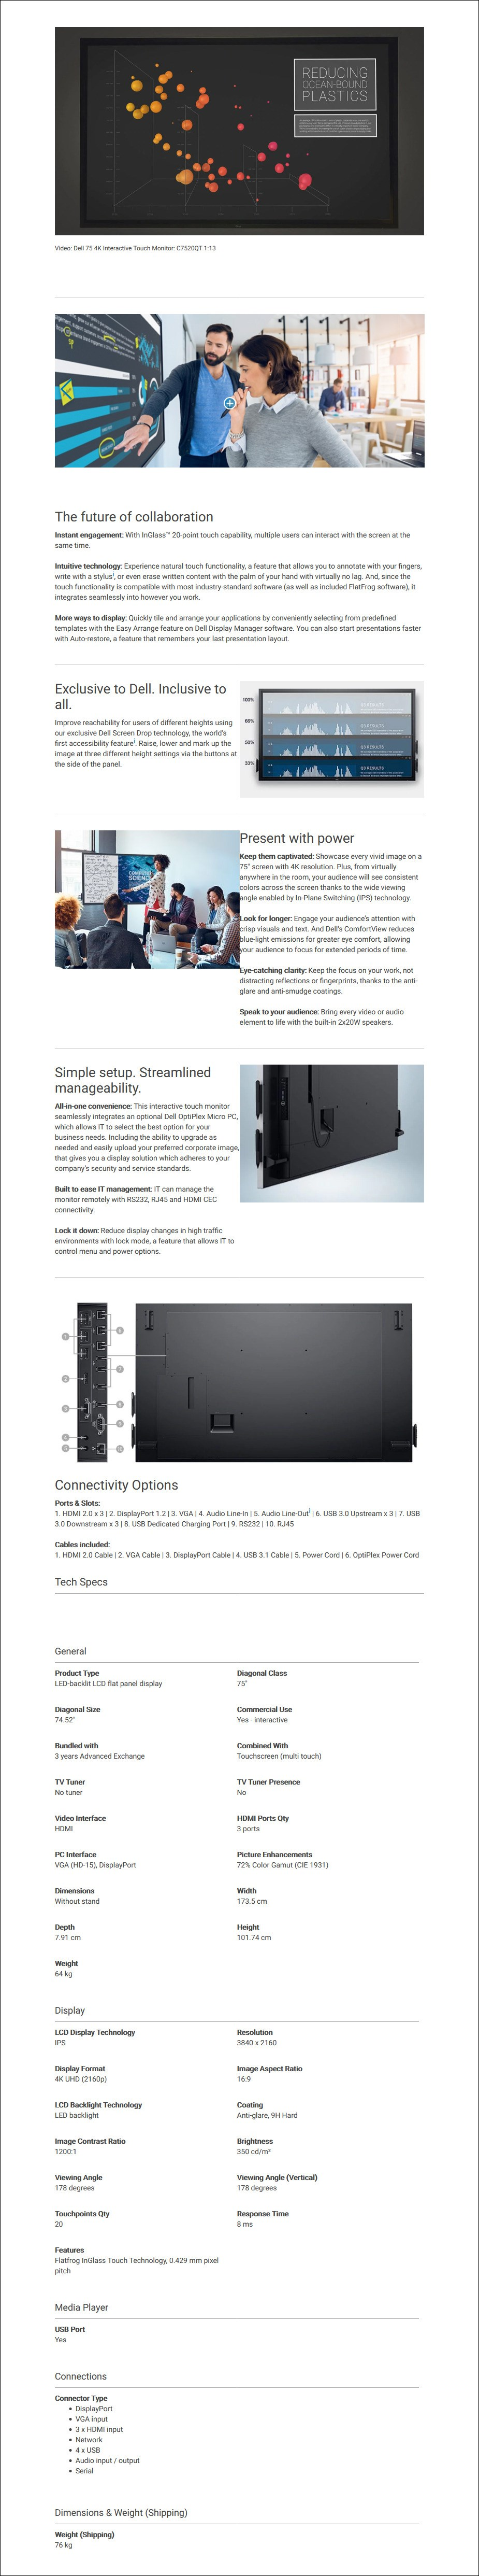 """Dell C7520QT 75"""" 4K UHD Interactive IPS Touch Display - Overview 1"""